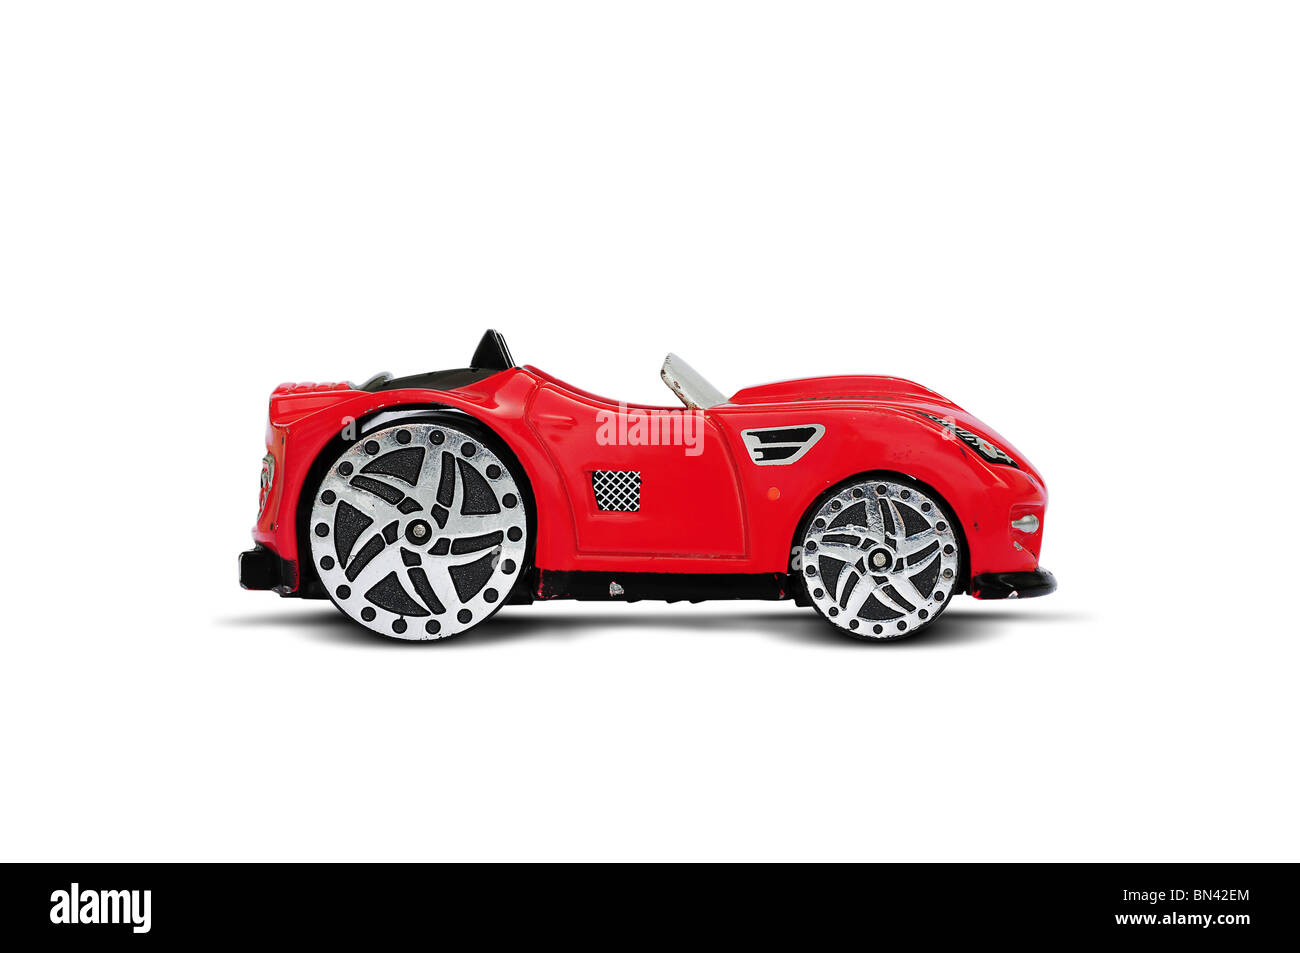 Toy roadster car - Stock Image